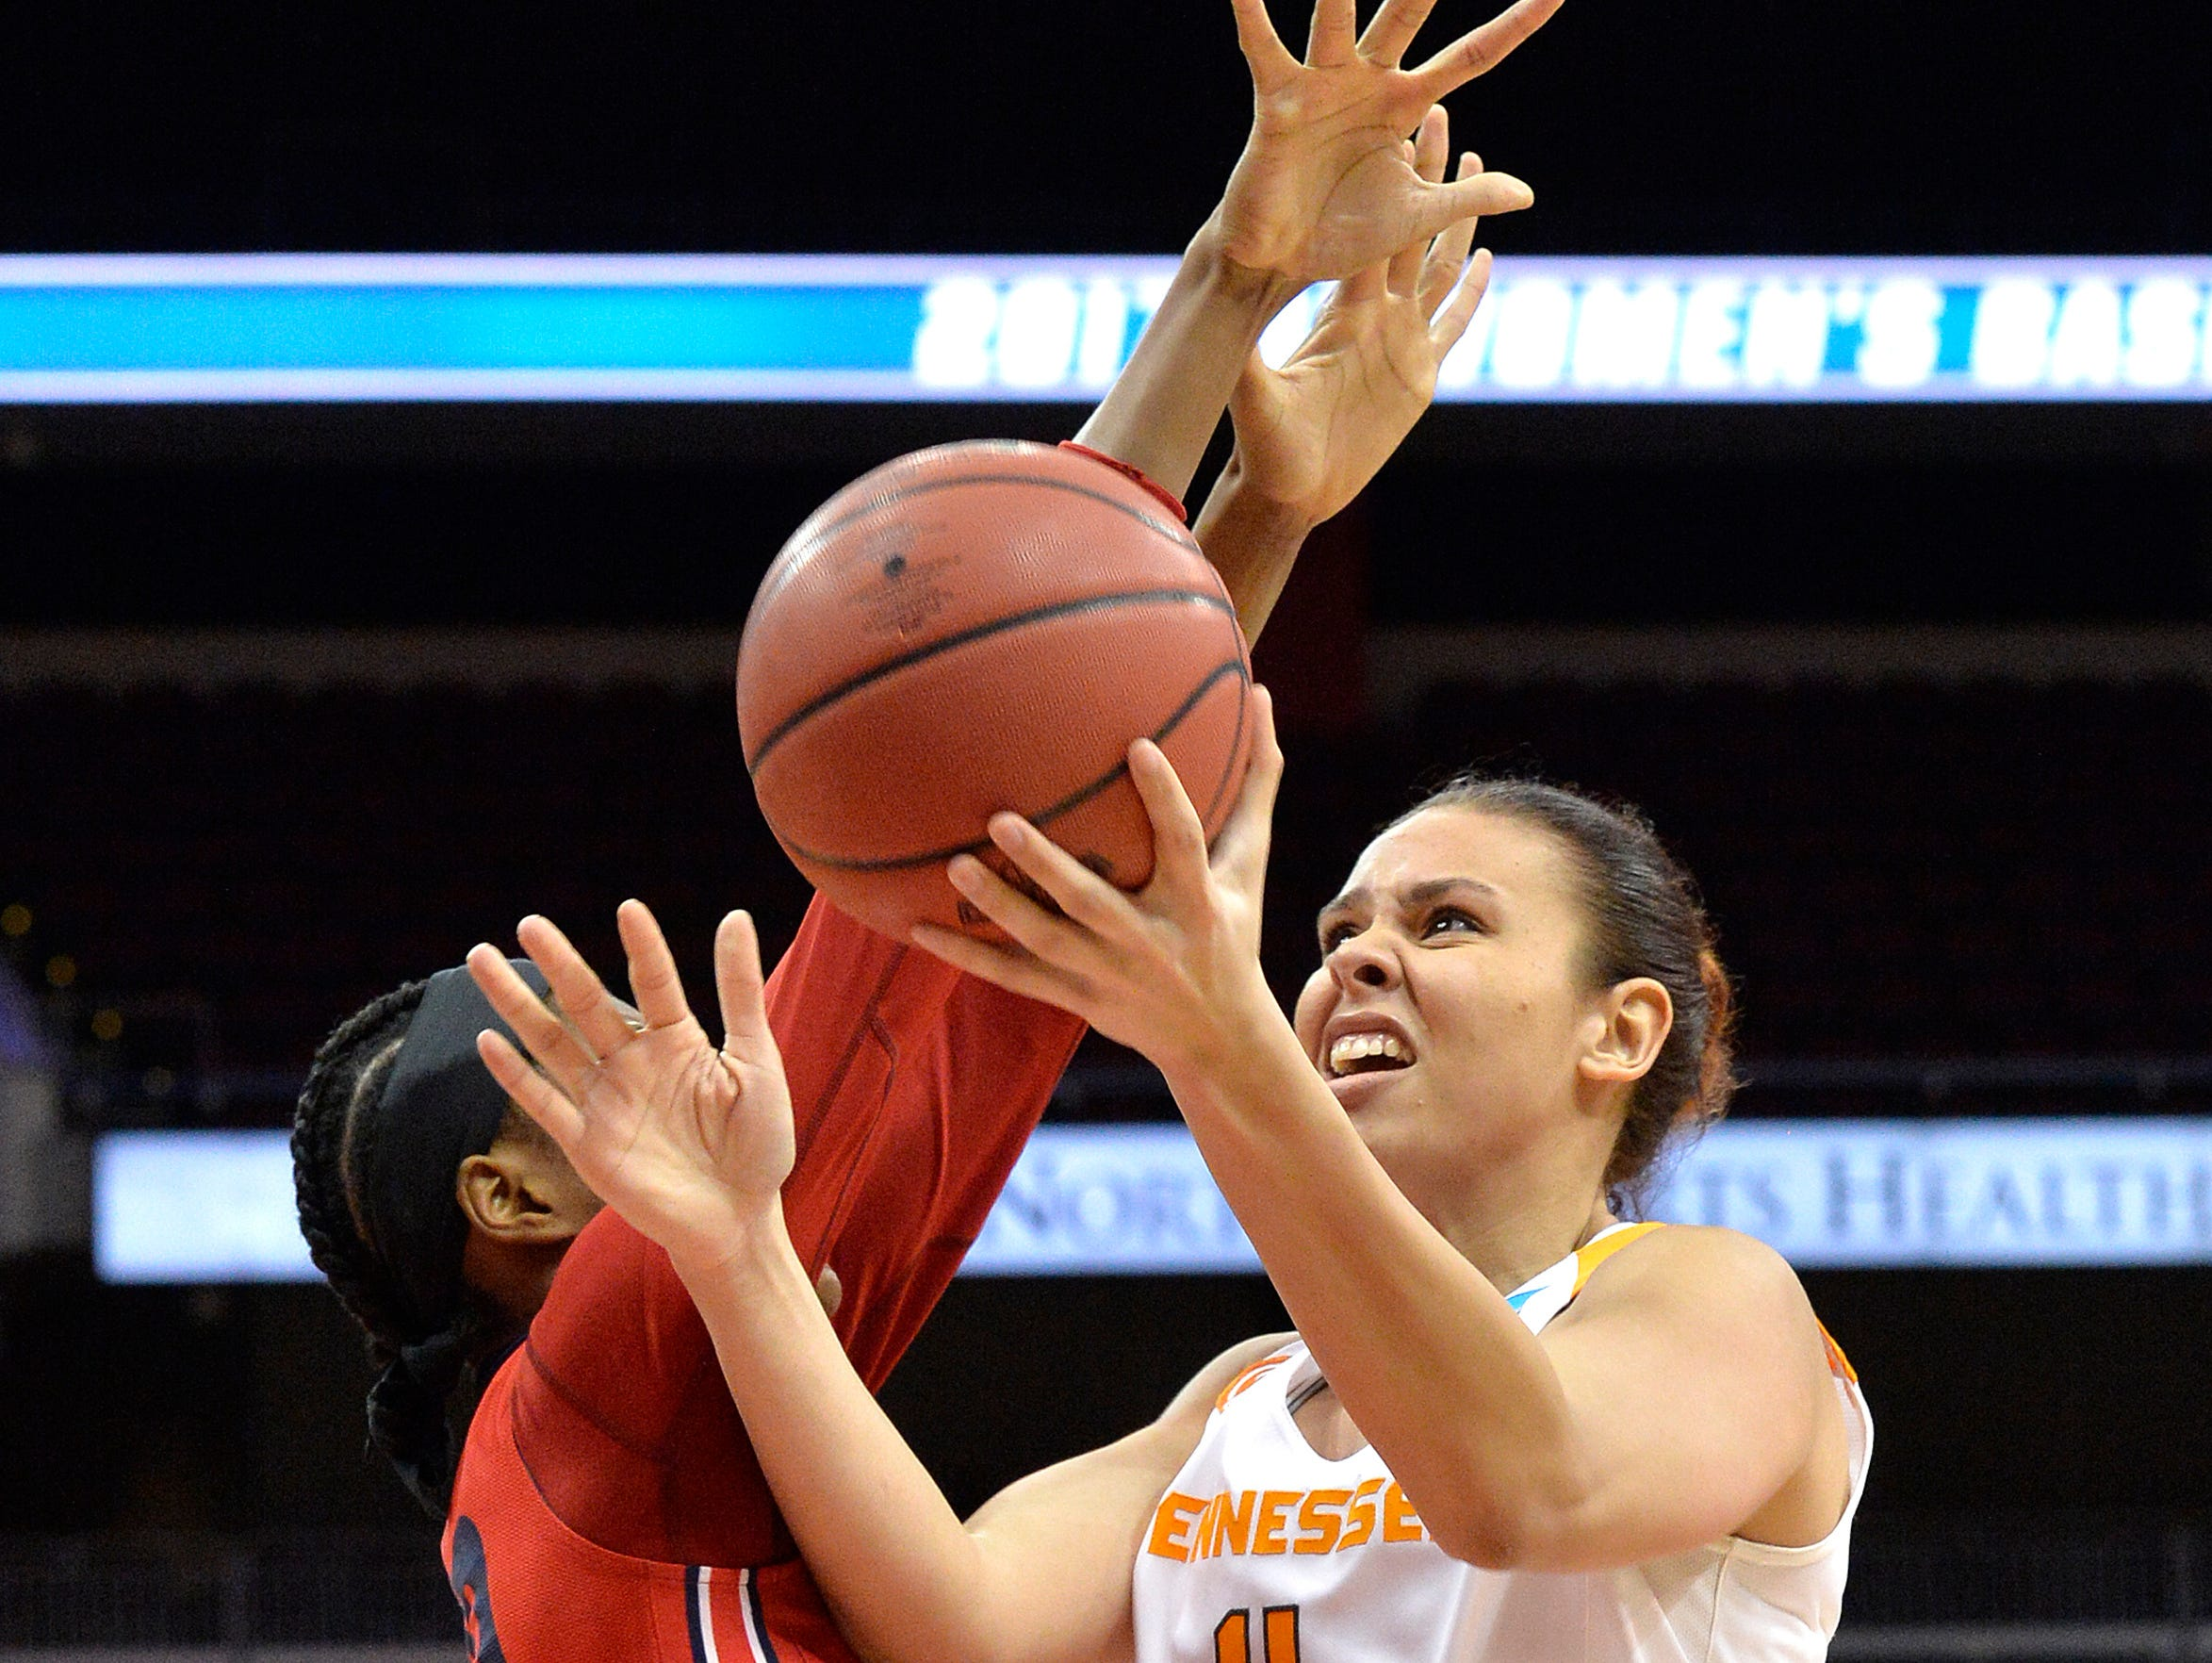 Tennessee's Schaquilla Nunn shoots past Dayton's Saicha Grant-Allen on Saturday in Louisville, Ky.